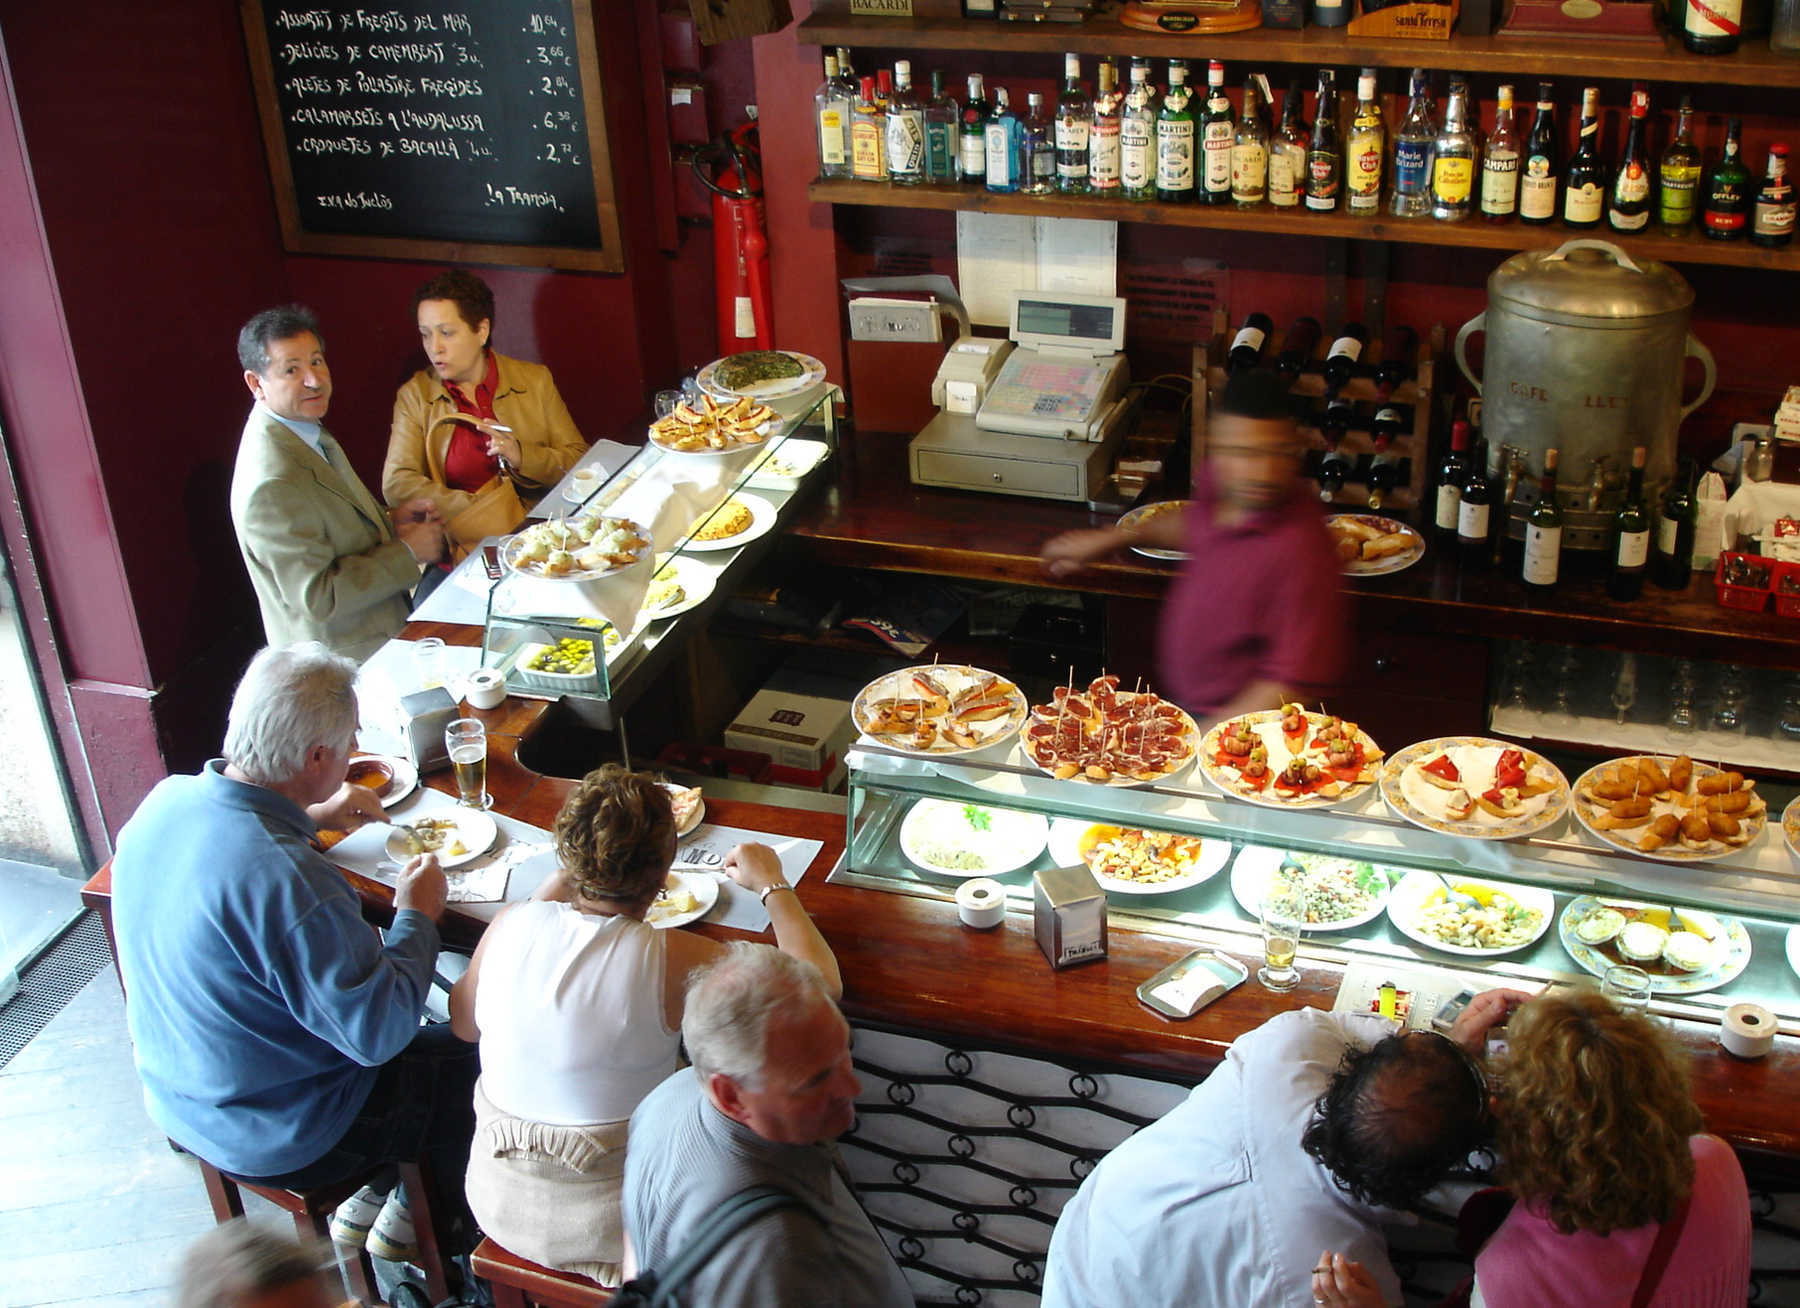 Tapas Bar Interior, Barcelona, Spain